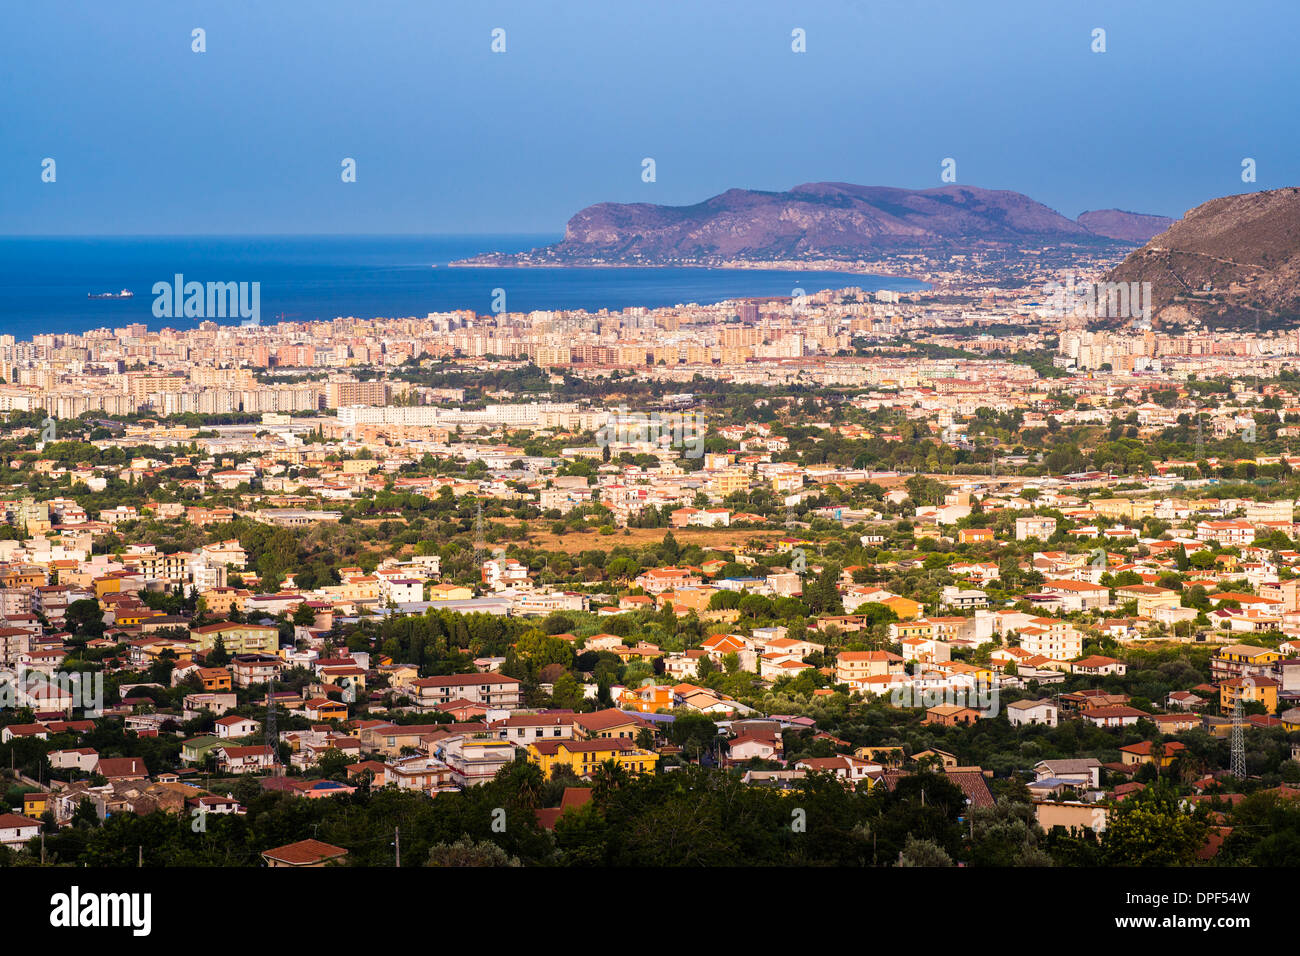 Cityscape of Palermo (Palermu) and the coast of Sicily, seen from Monreale, Sicily, Italy, Mediterranean, Europe - Stock Image